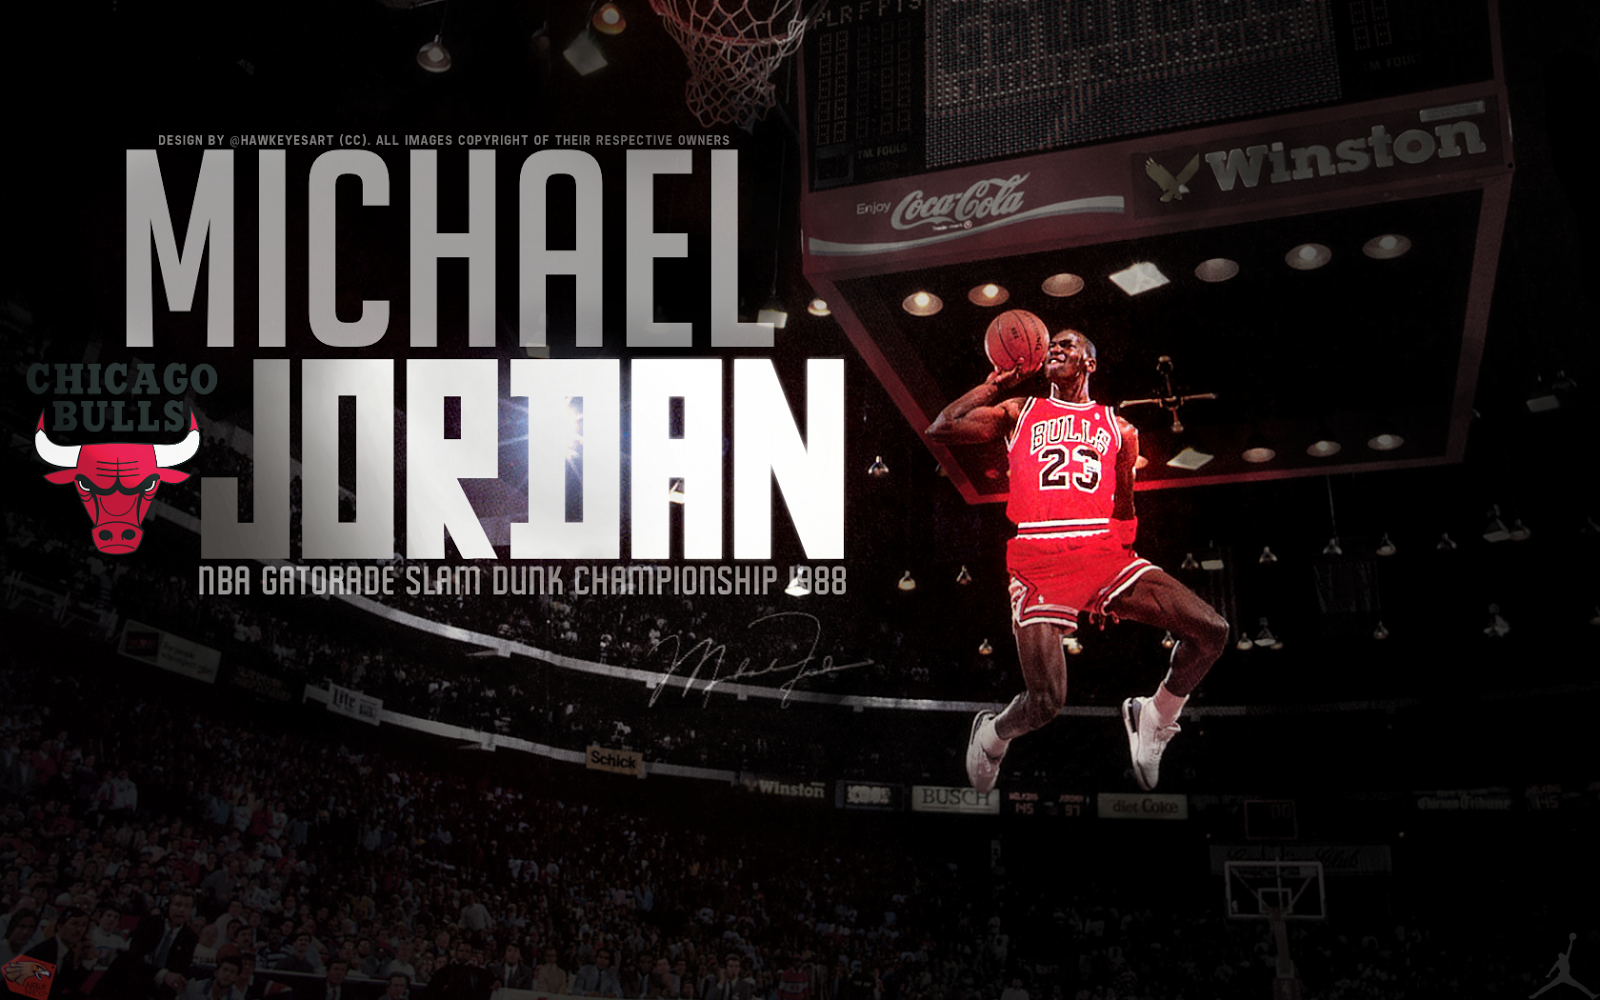 michael jordan moving wallpaper wallpapersafari Jordans Shoes iPhone 6 Wallpaper iPhone 6 Cases Retro